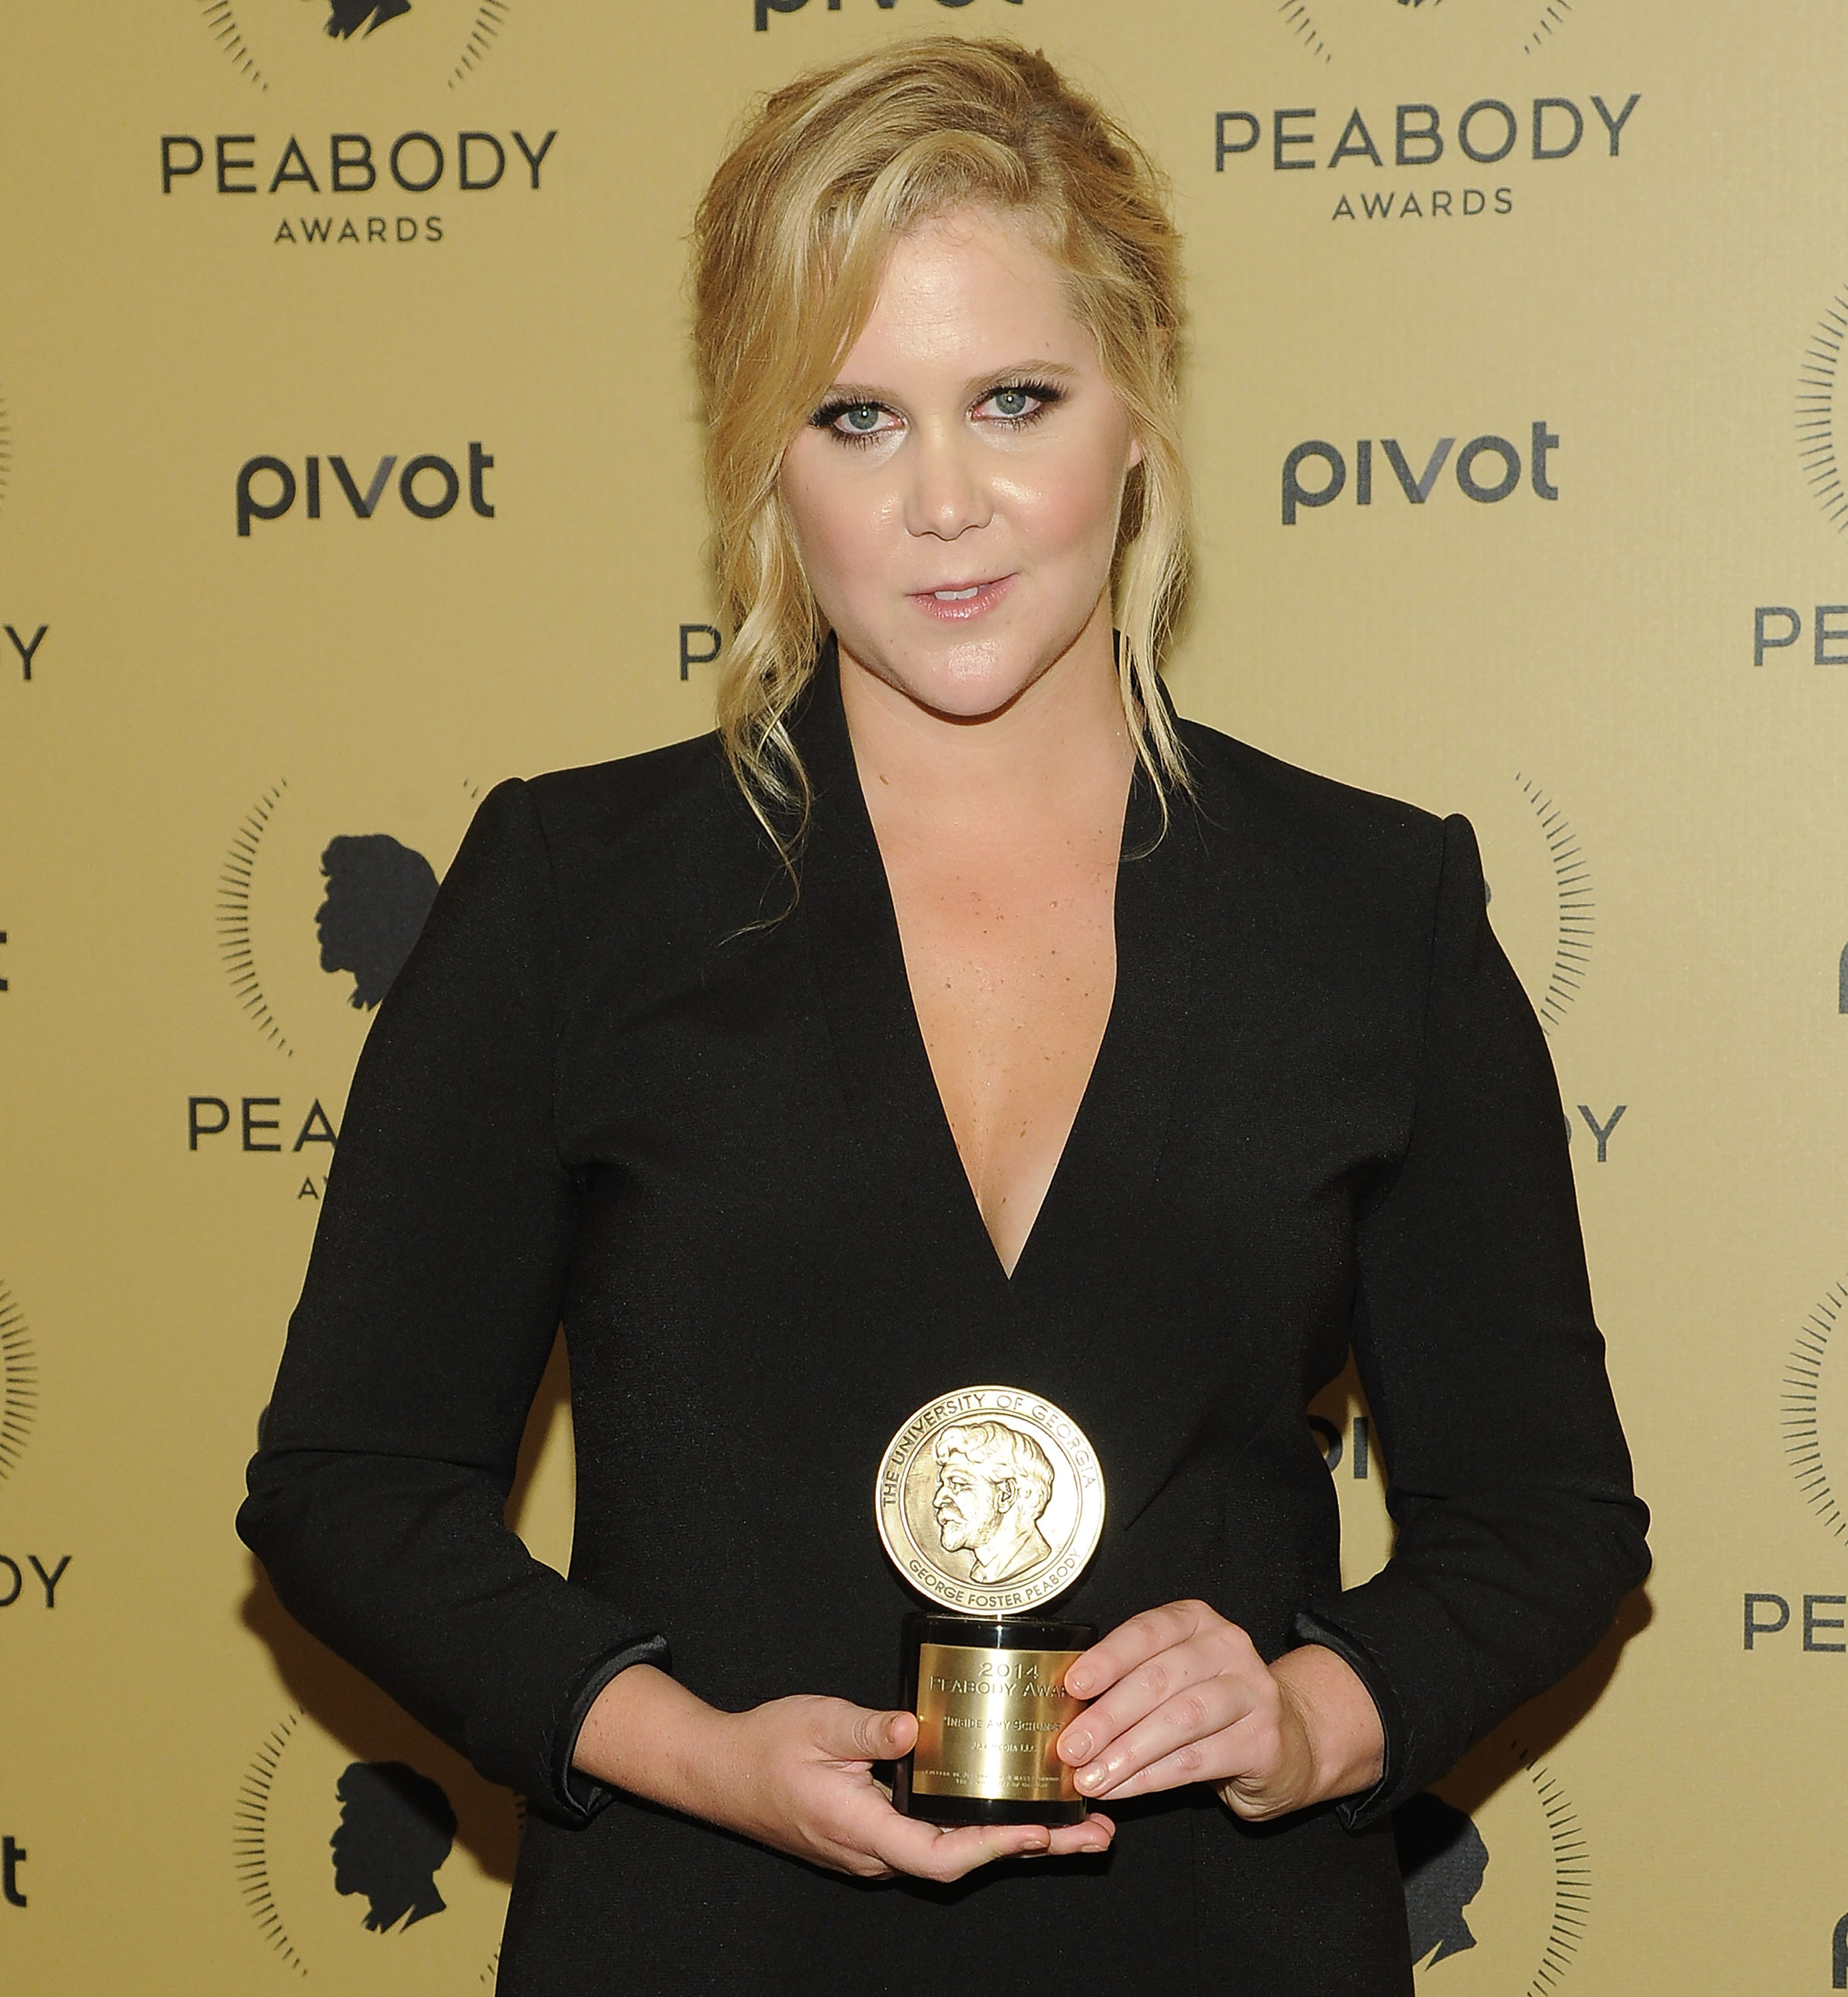 Amy Schumer attends The 74th Annual Peabody Awards Ceremony at Cipriani Wall Street on May 31, 2015 in New York City.